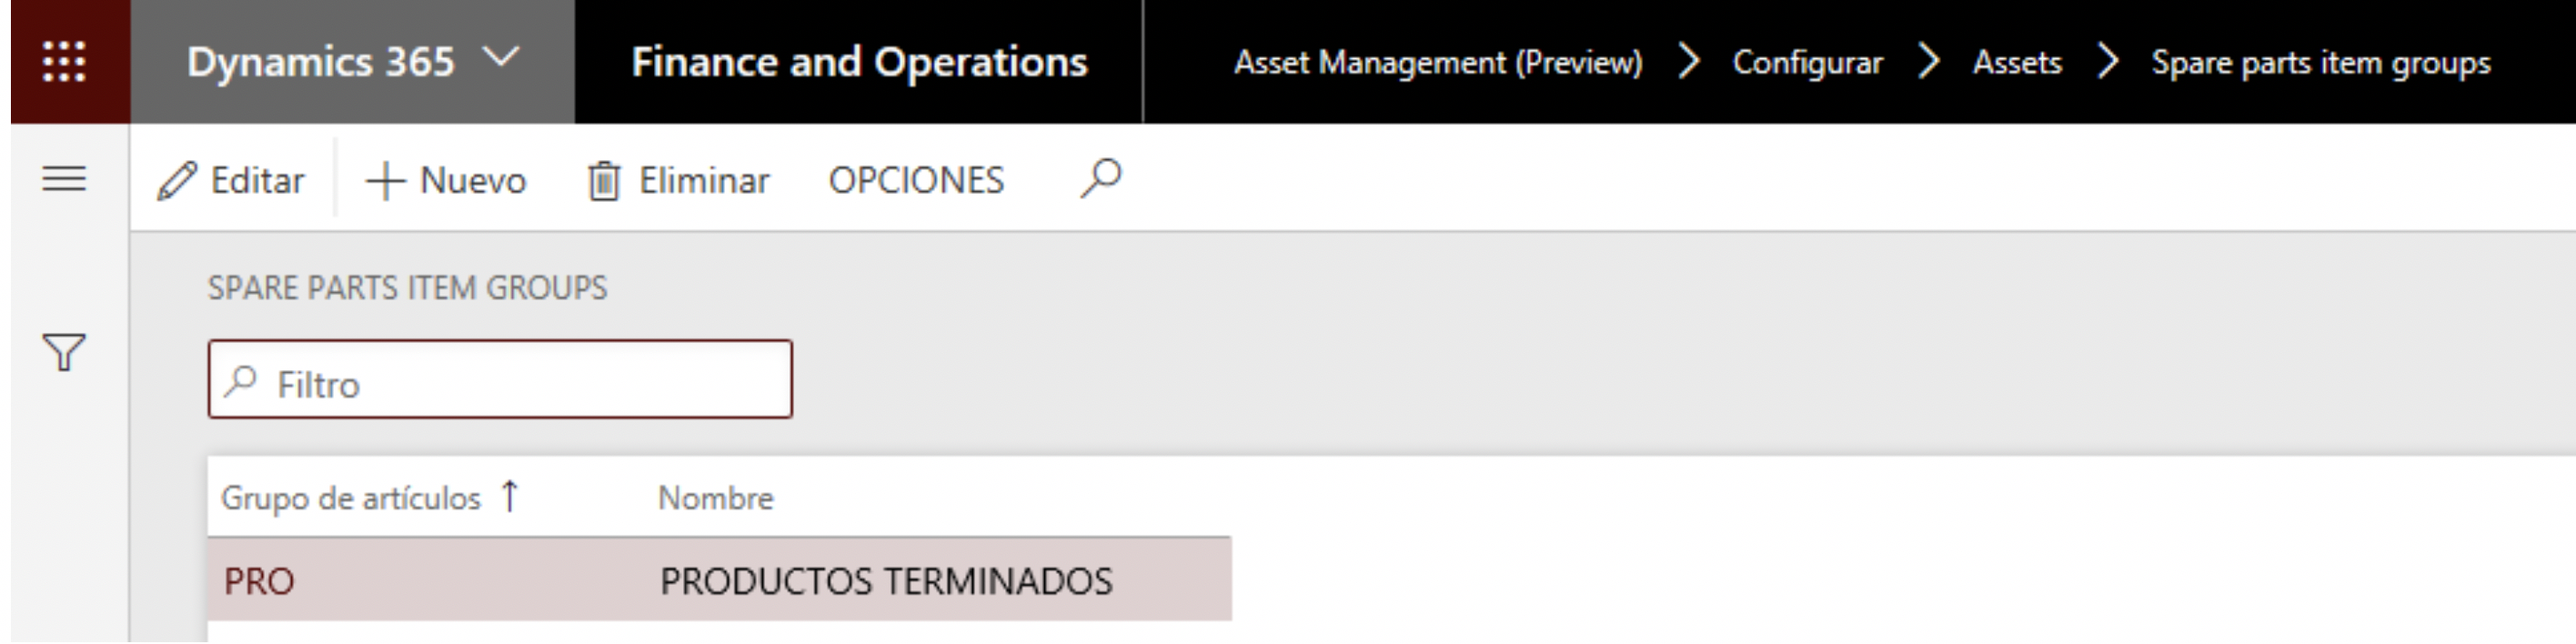 ERD - Dynamics365 Finance Operations - Gestión Activos ERP - 2.6